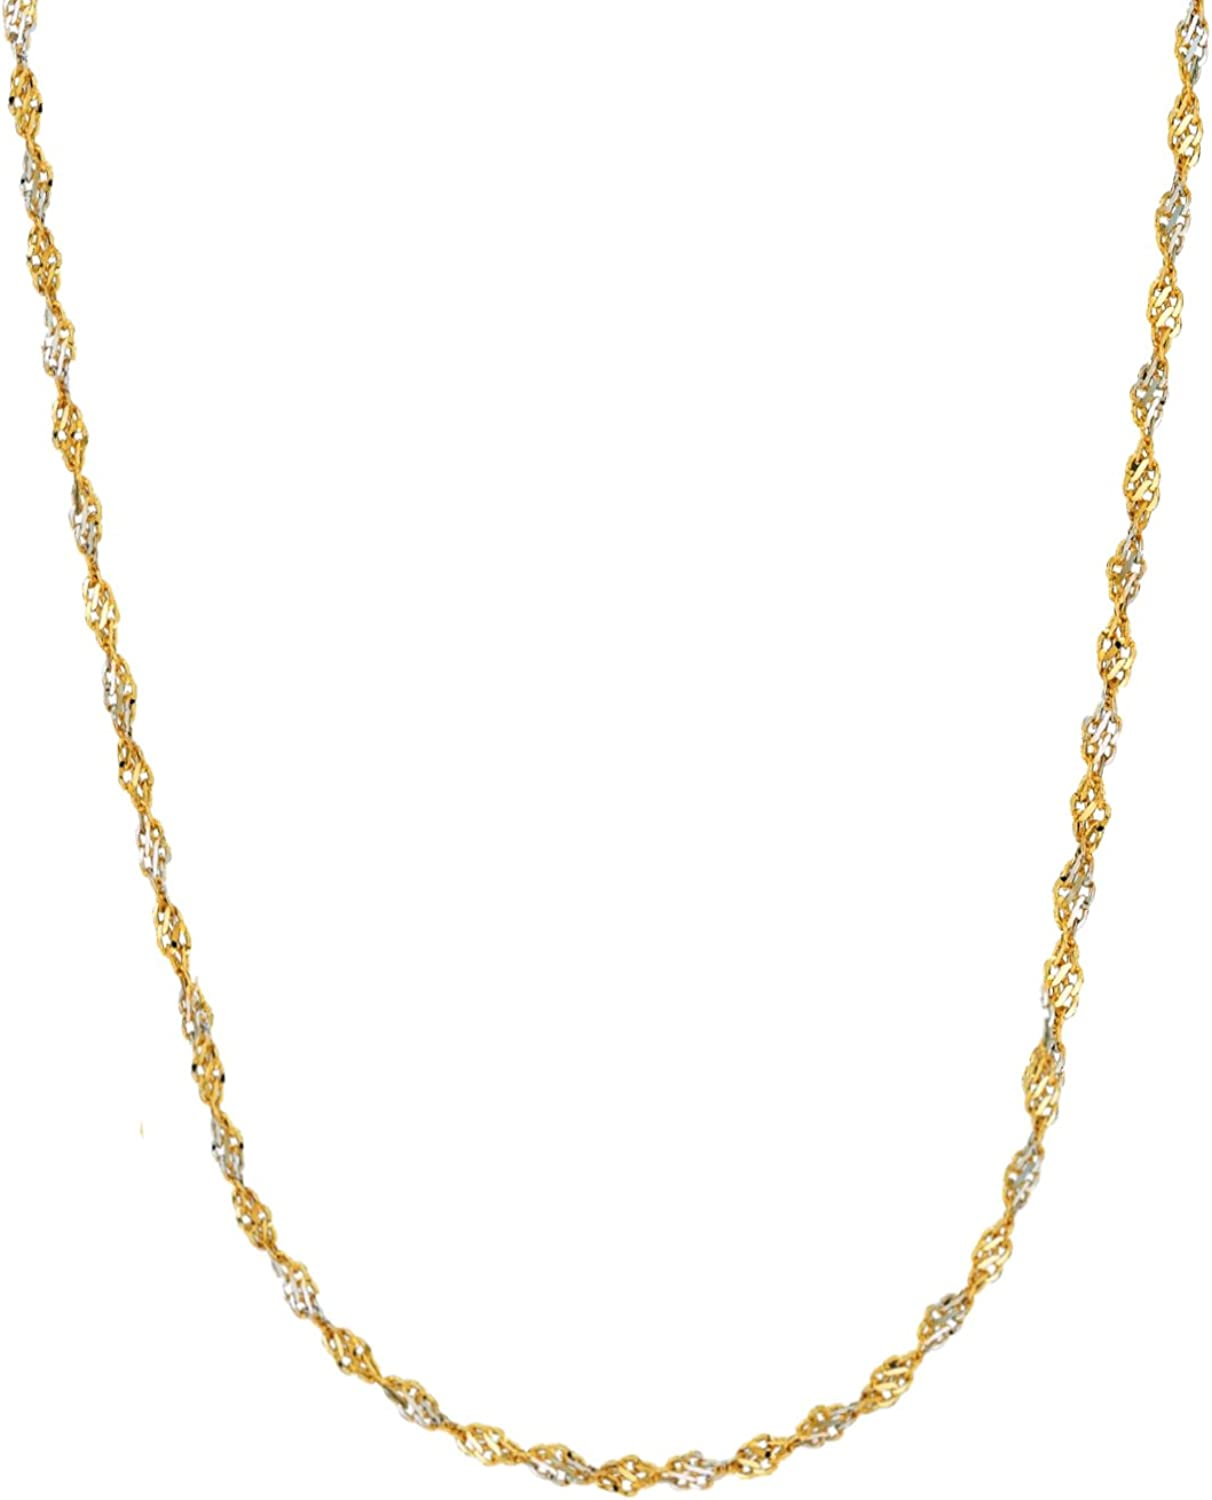 Ritastephens 14k Gold Yellow and White Two Tone Singapore Chain Necklace (1.35mm, 2mm)